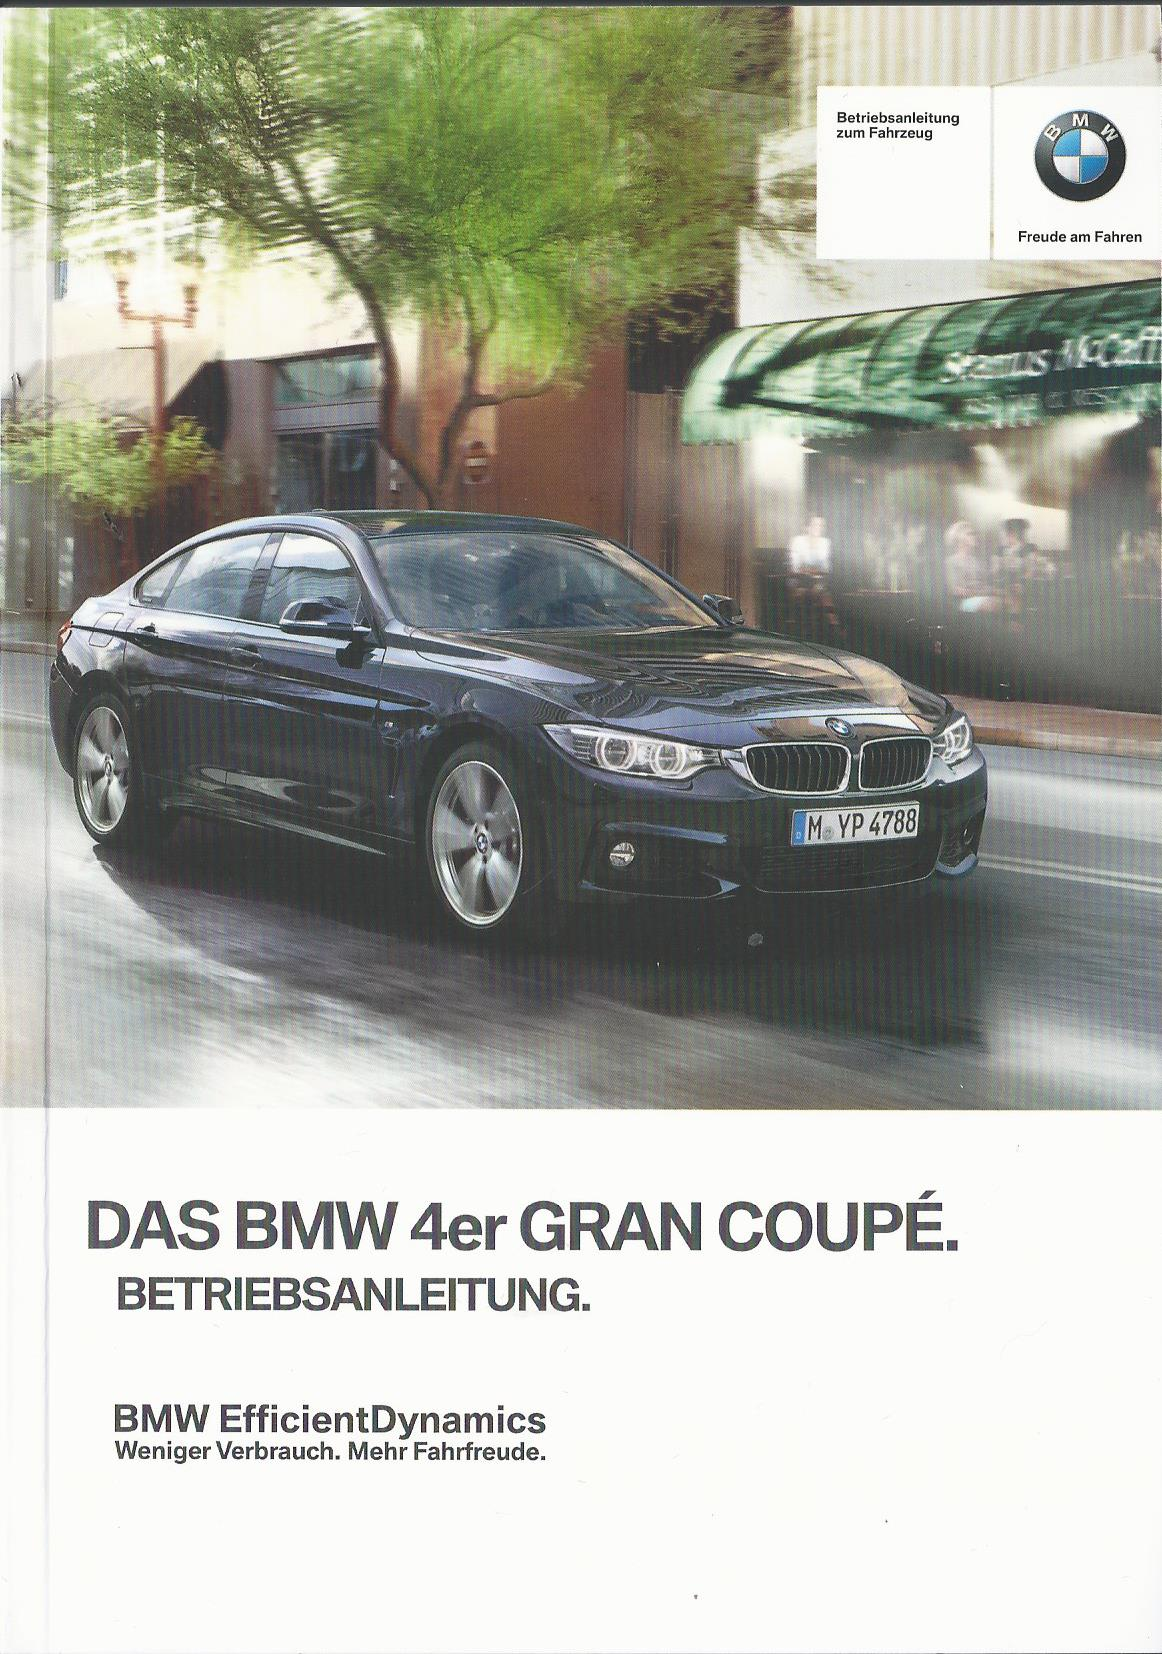 bmw 4er gran coupe f36 betriebsanleitung 2014 2015 bedienungsanleitung ba ebay. Black Bedroom Furniture Sets. Home Design Ideas